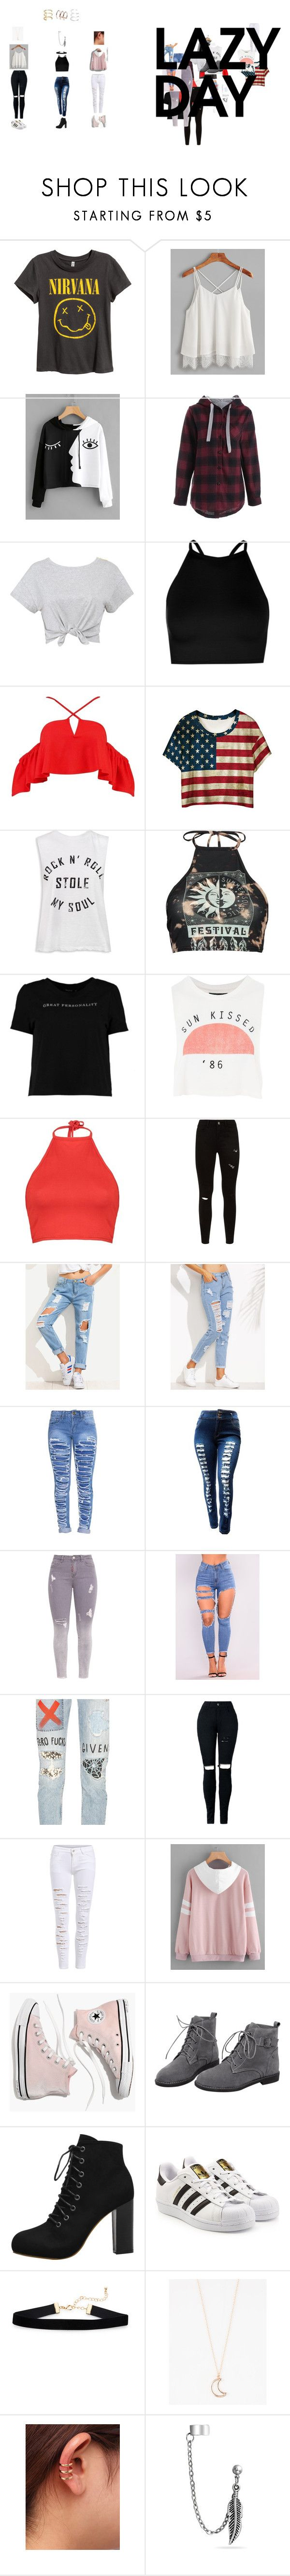 """""""christmas gifts"""" by breejanae128 on Polyvore featuring Boohoo, WithChic, Sans Souci, Topshop, GRLFRND, Madewell, adidas Originals, Full Tilt, Bling Jewelry and Bing Bang"""